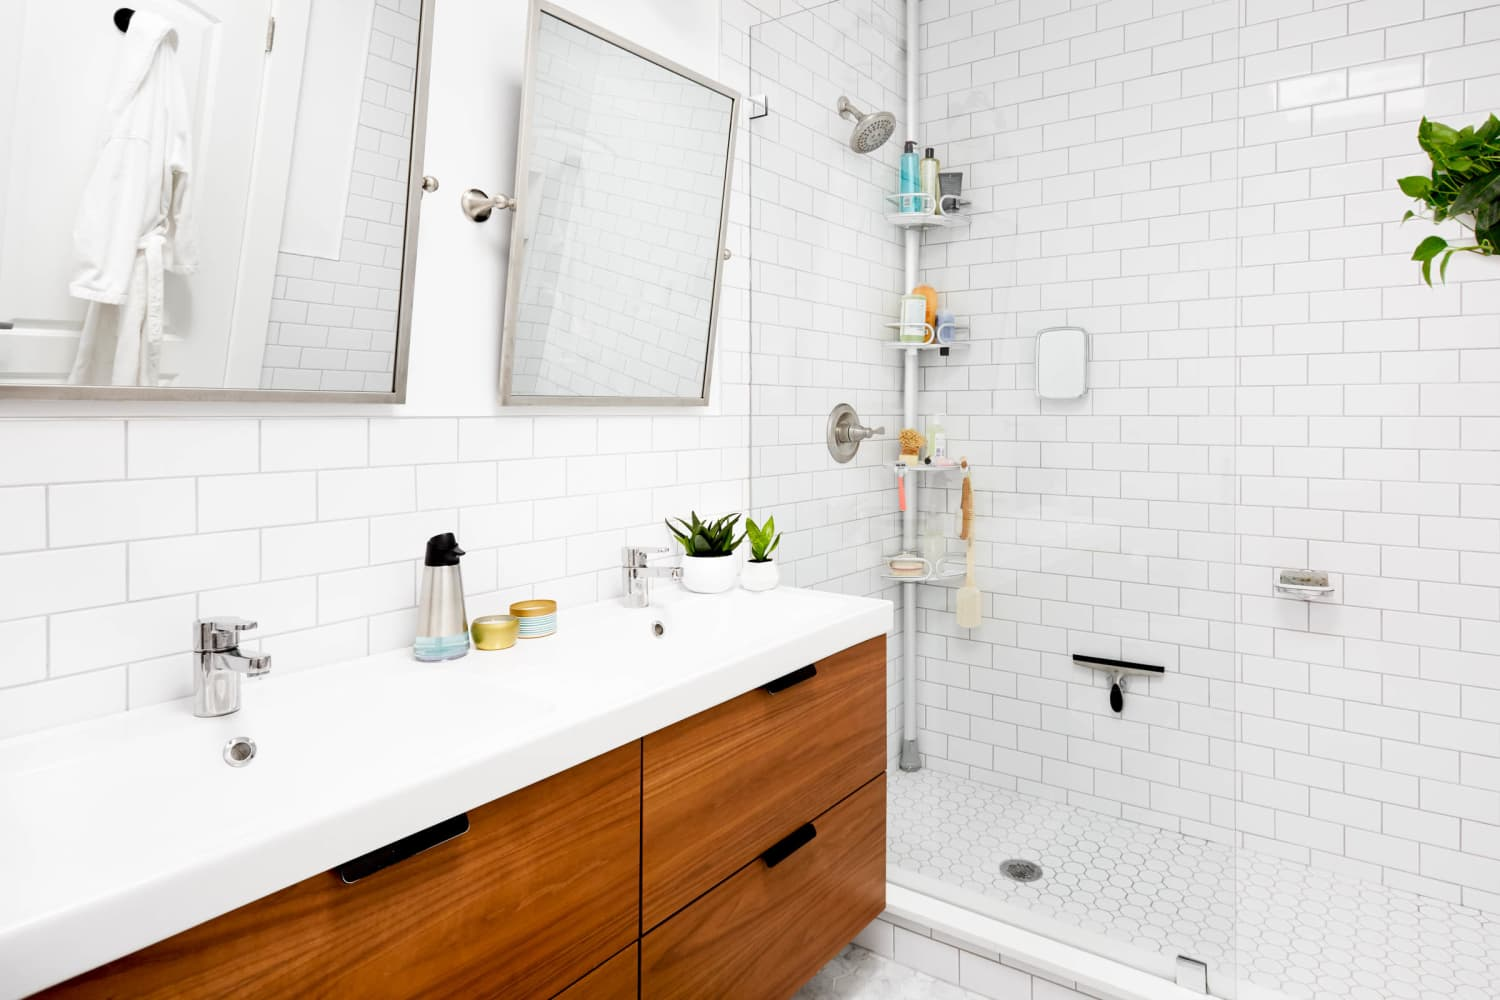 11 Steps to Cleaning and Disinfecting the Bathroom Like a Pro